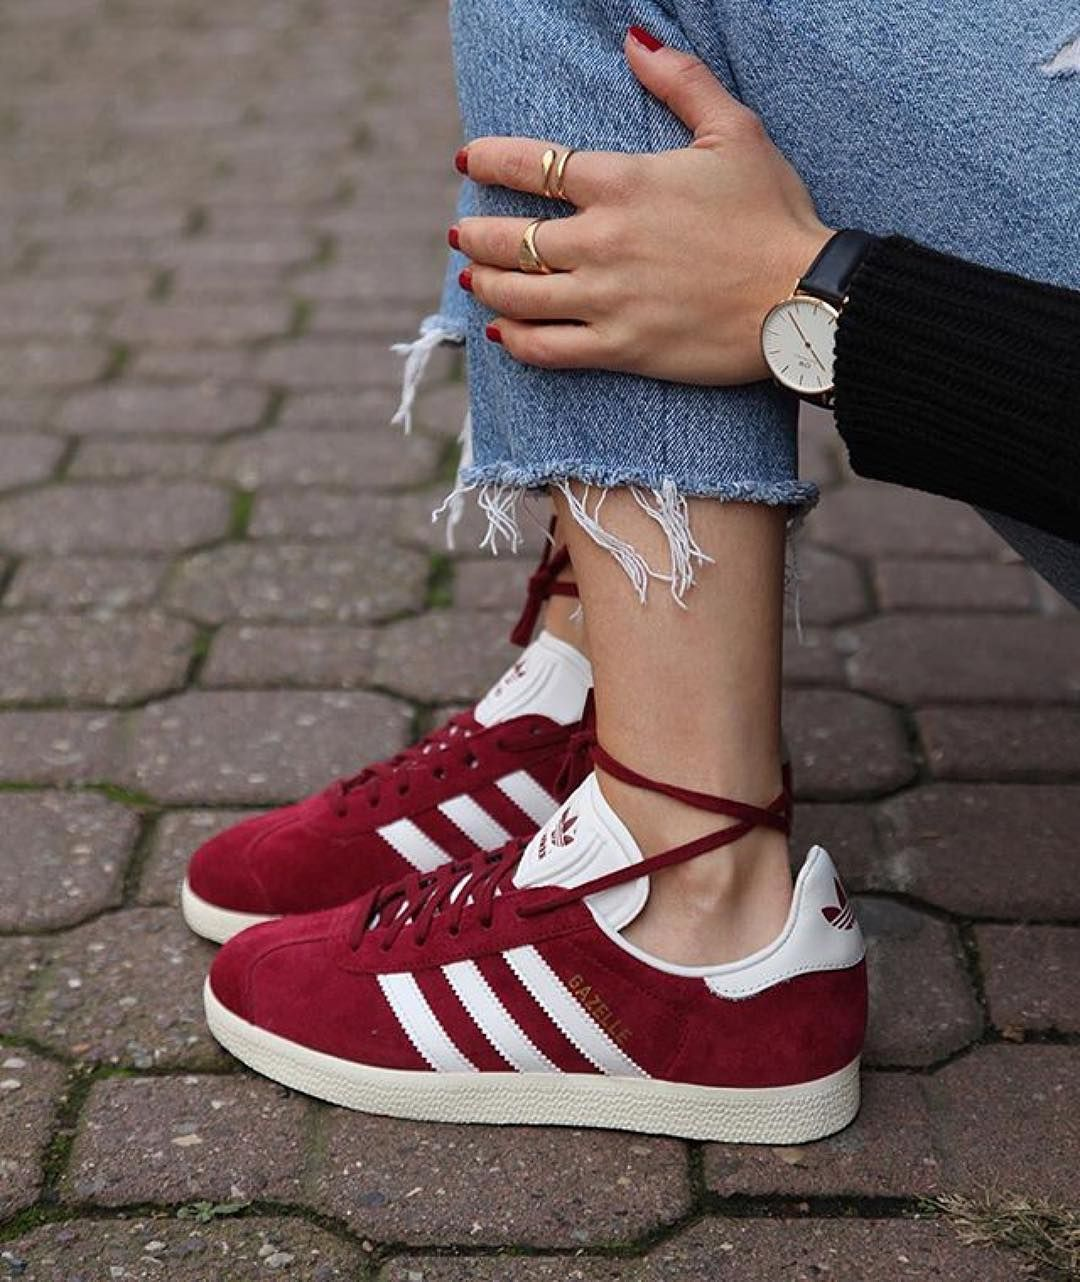 Adidas Shoes Women : For Womens Adidas Collection Fashion